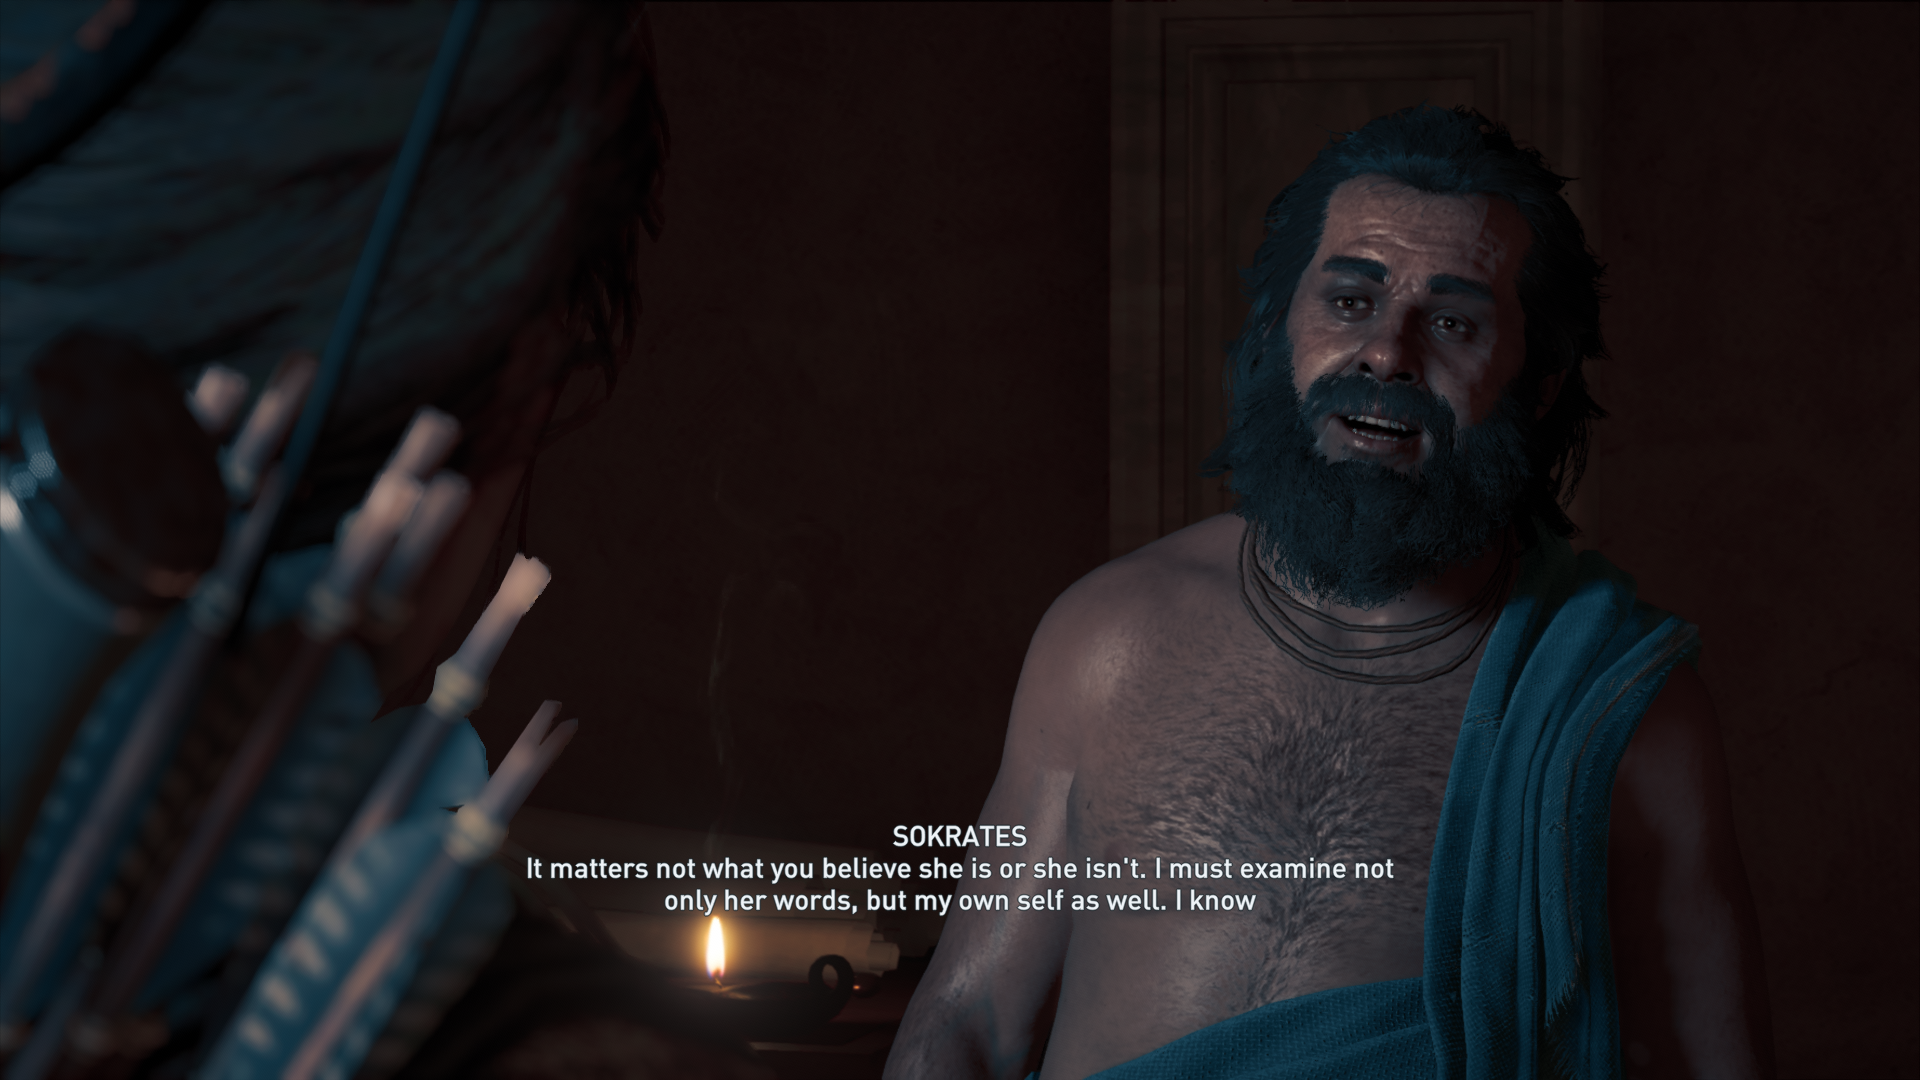 Sokrates Assassin's Creed Odyssey